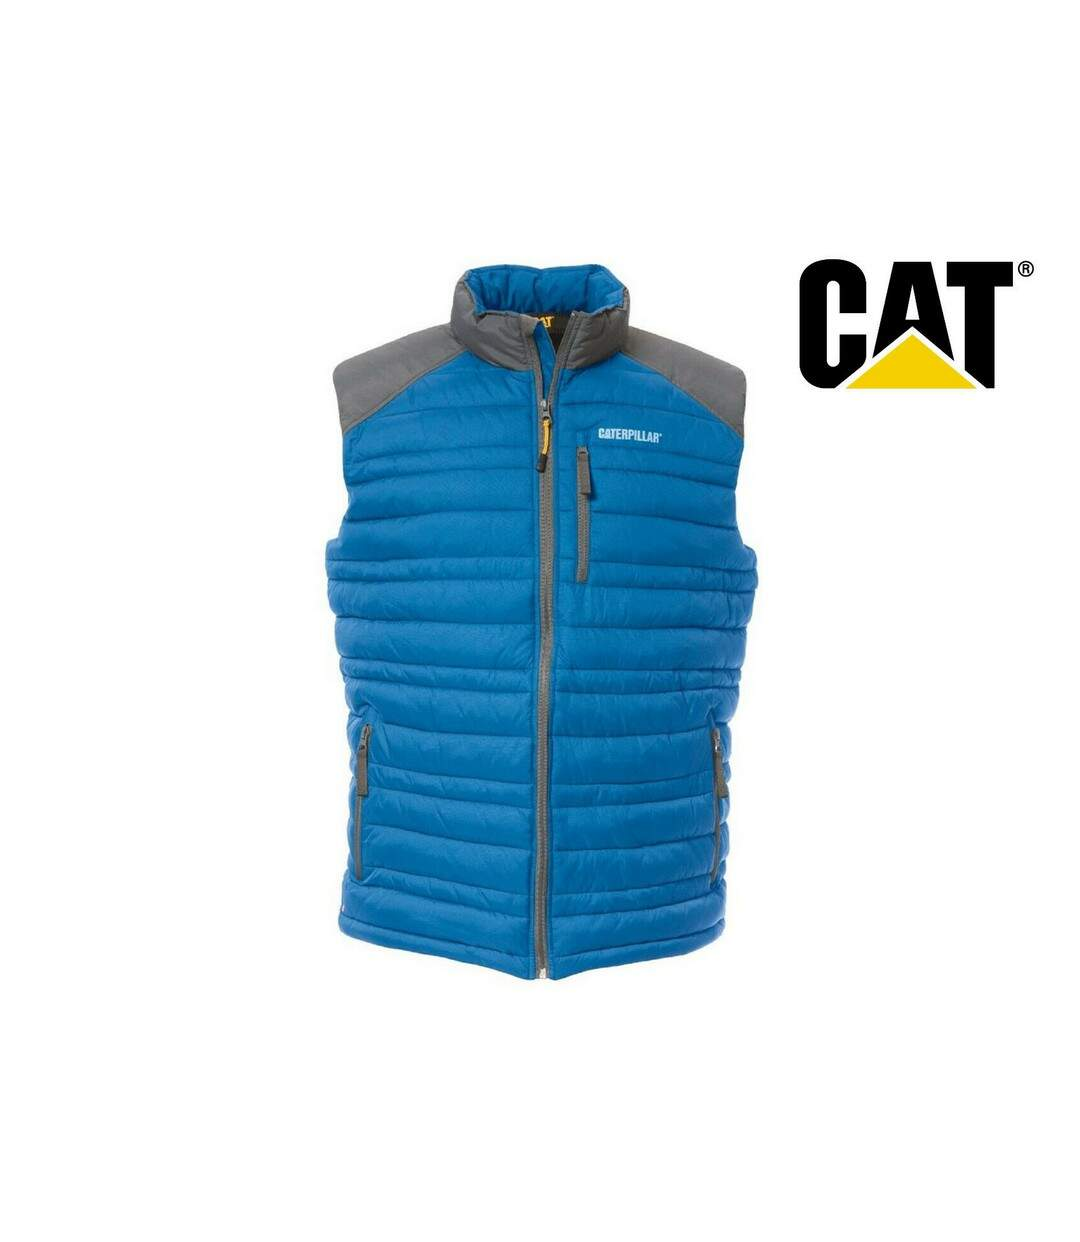 Caterpillar Mens C1320012 Defender Insulated Sleeveless Bodywarmer (Blue) - UTFS4024